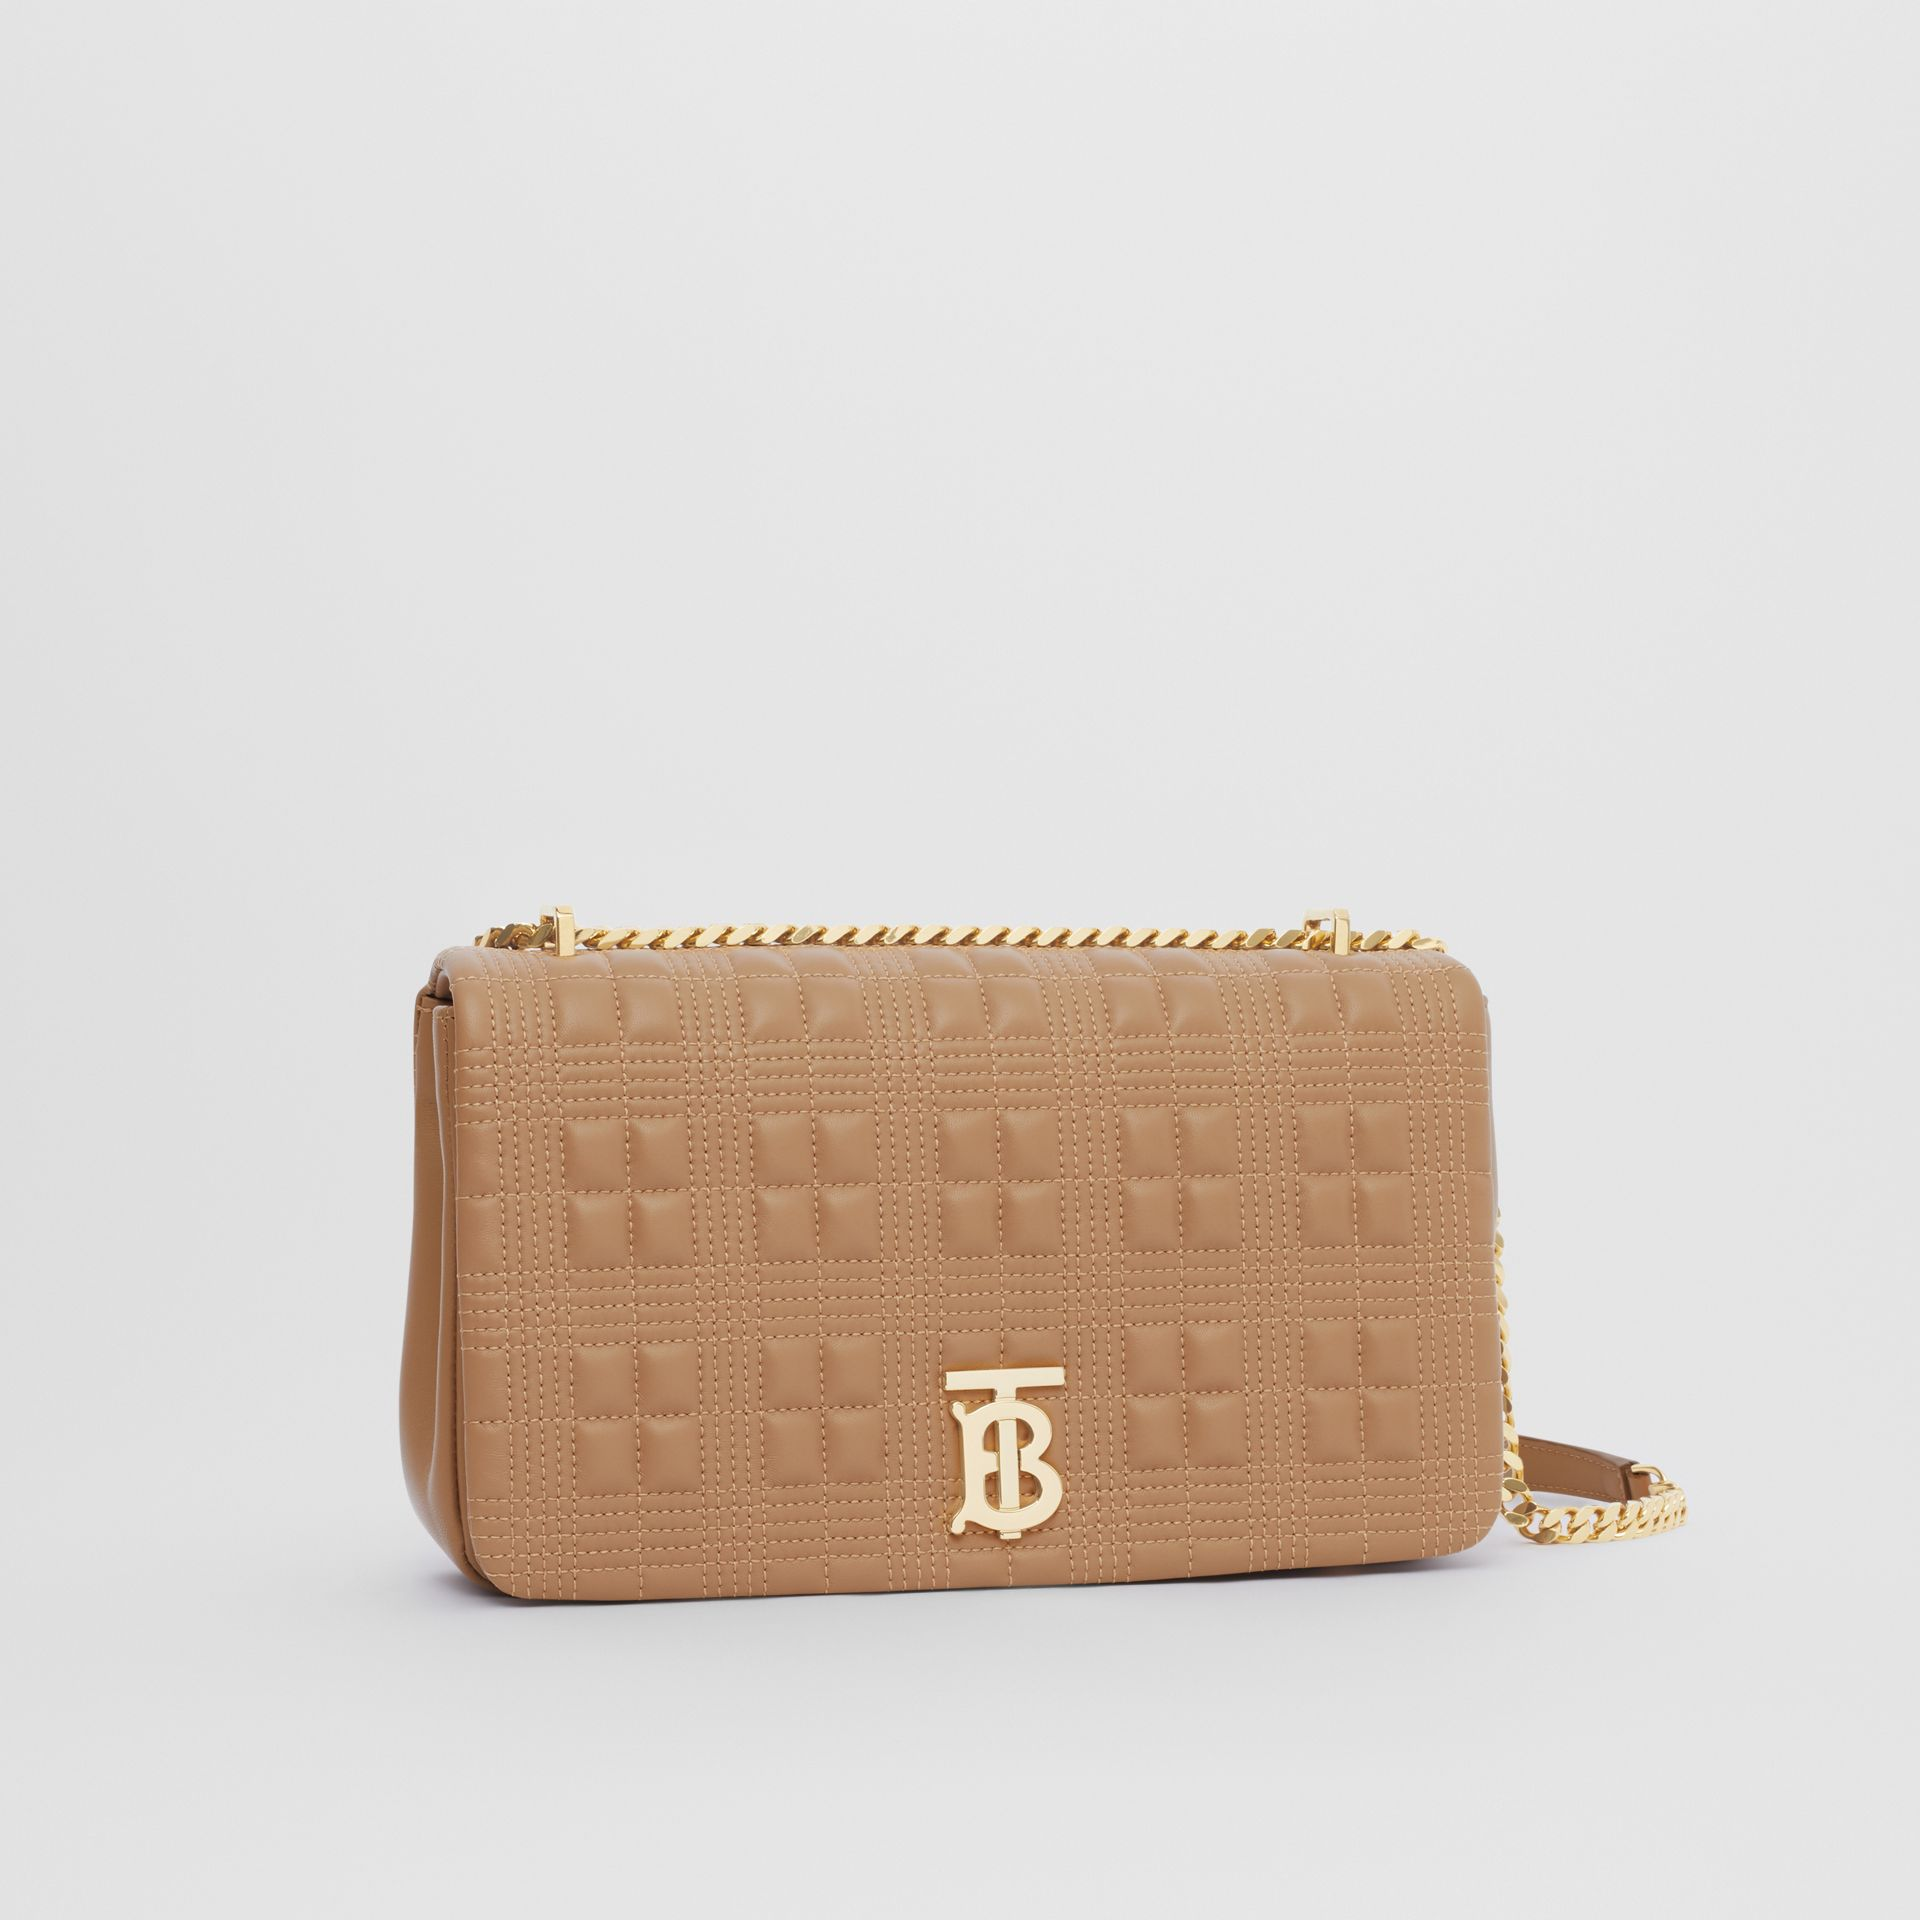 Medium Quilted Lambskin Lola Bag in Camel - Women | Burberry - gallery image 6